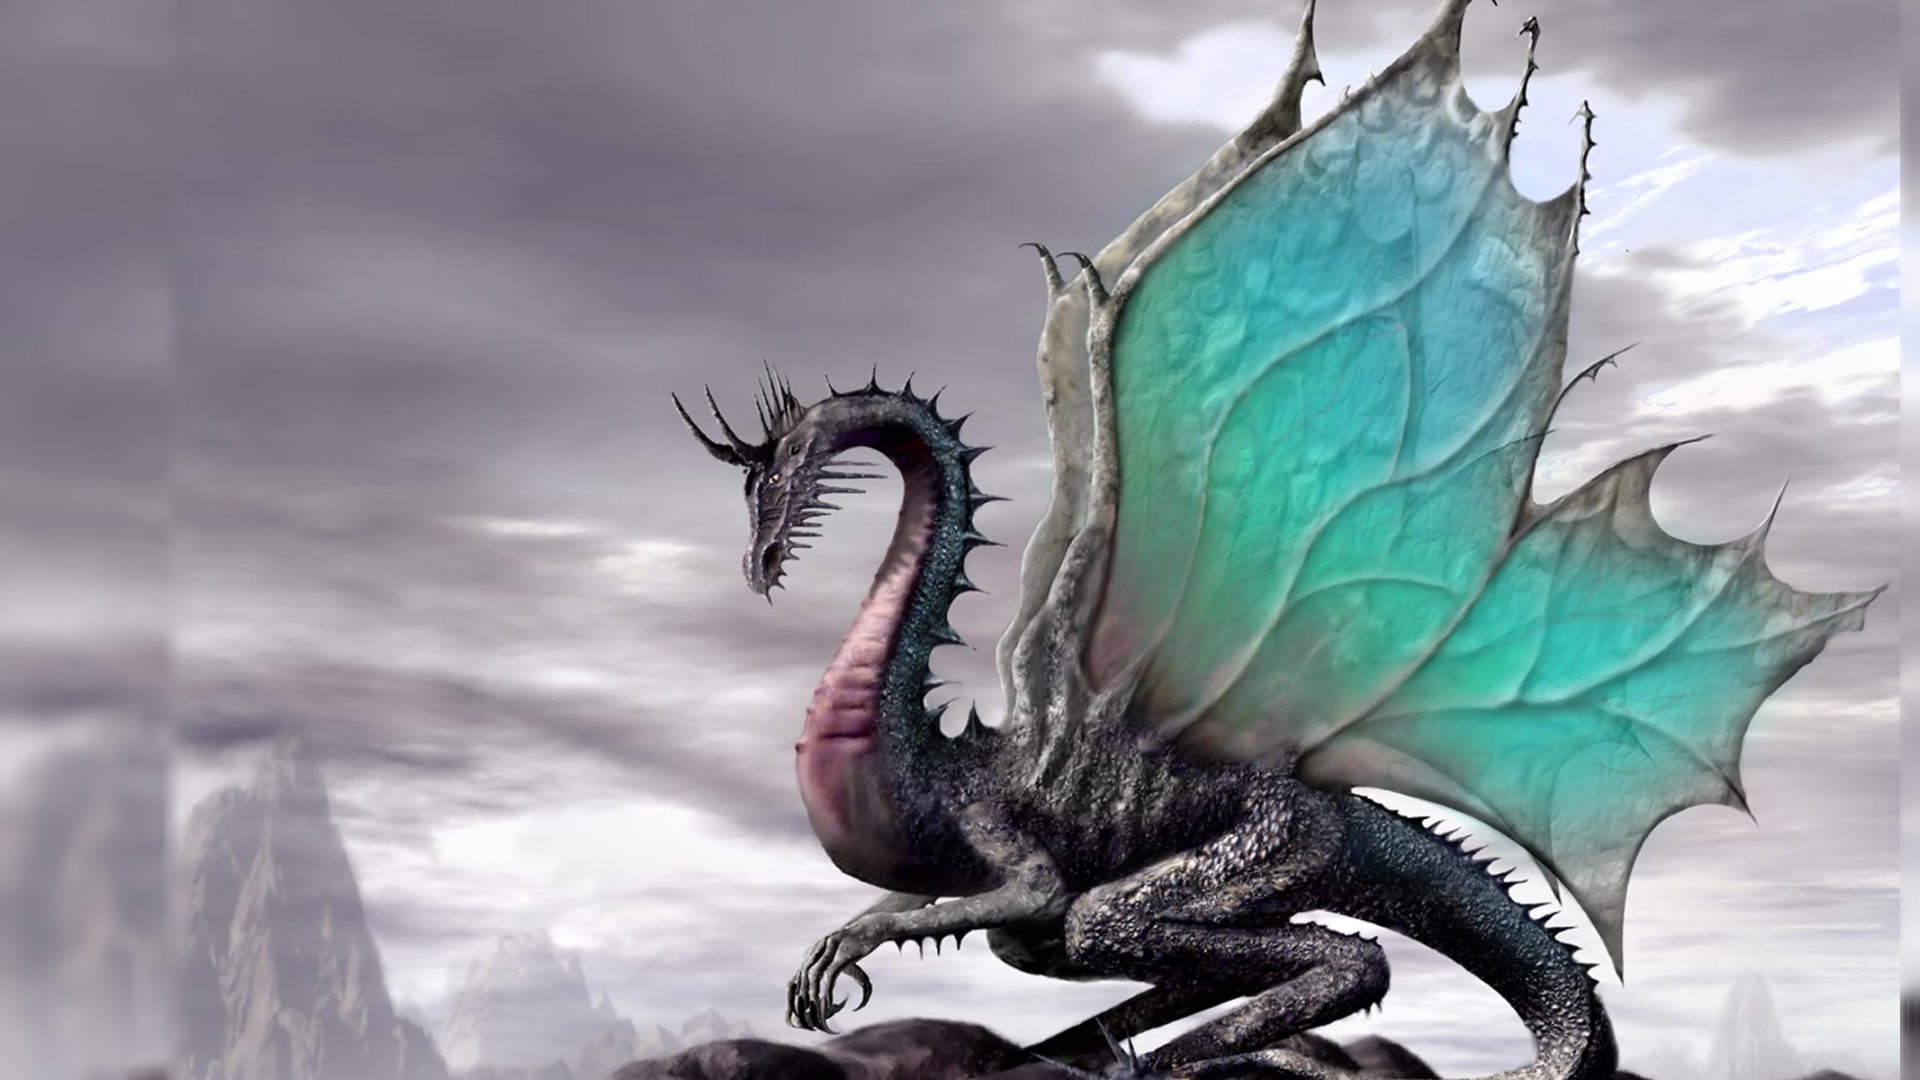 Top 50 HD Dragon Wallpapers Images Backgrounds Desktop 1920x1080